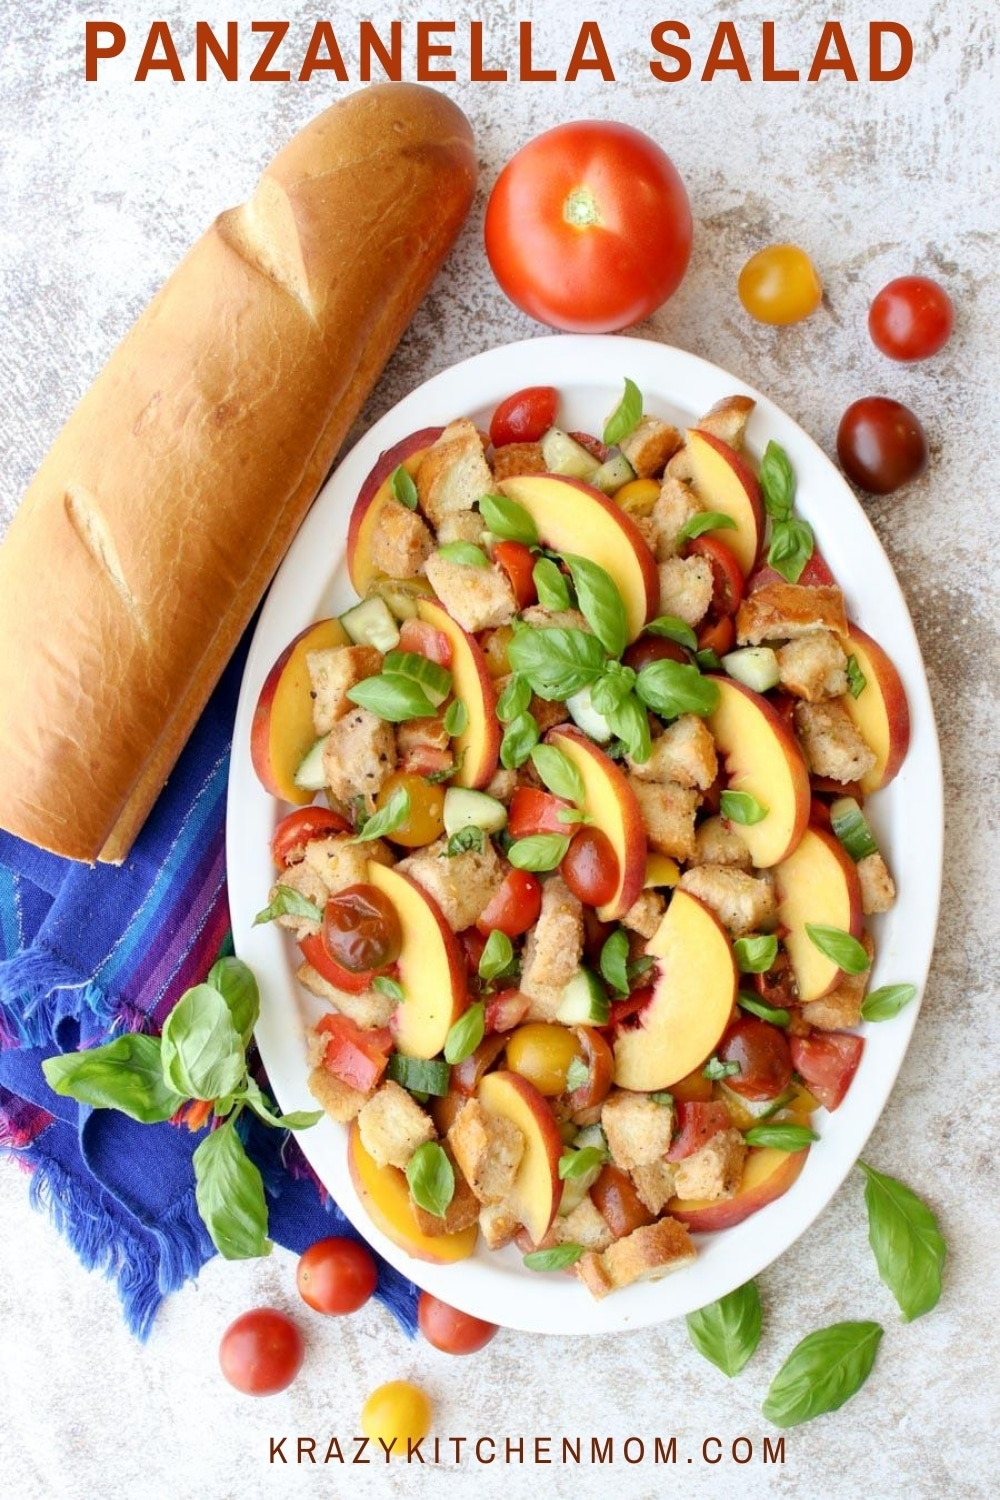 """This is my summertime version of the classic Italian Panzanella Salad. I've added fresh slices of juicy peaches that add another layer of freshness and sweetness. Once you try it, I promise it will become your """"go-to summer salad"""" too! via @krazykitchenmom"""